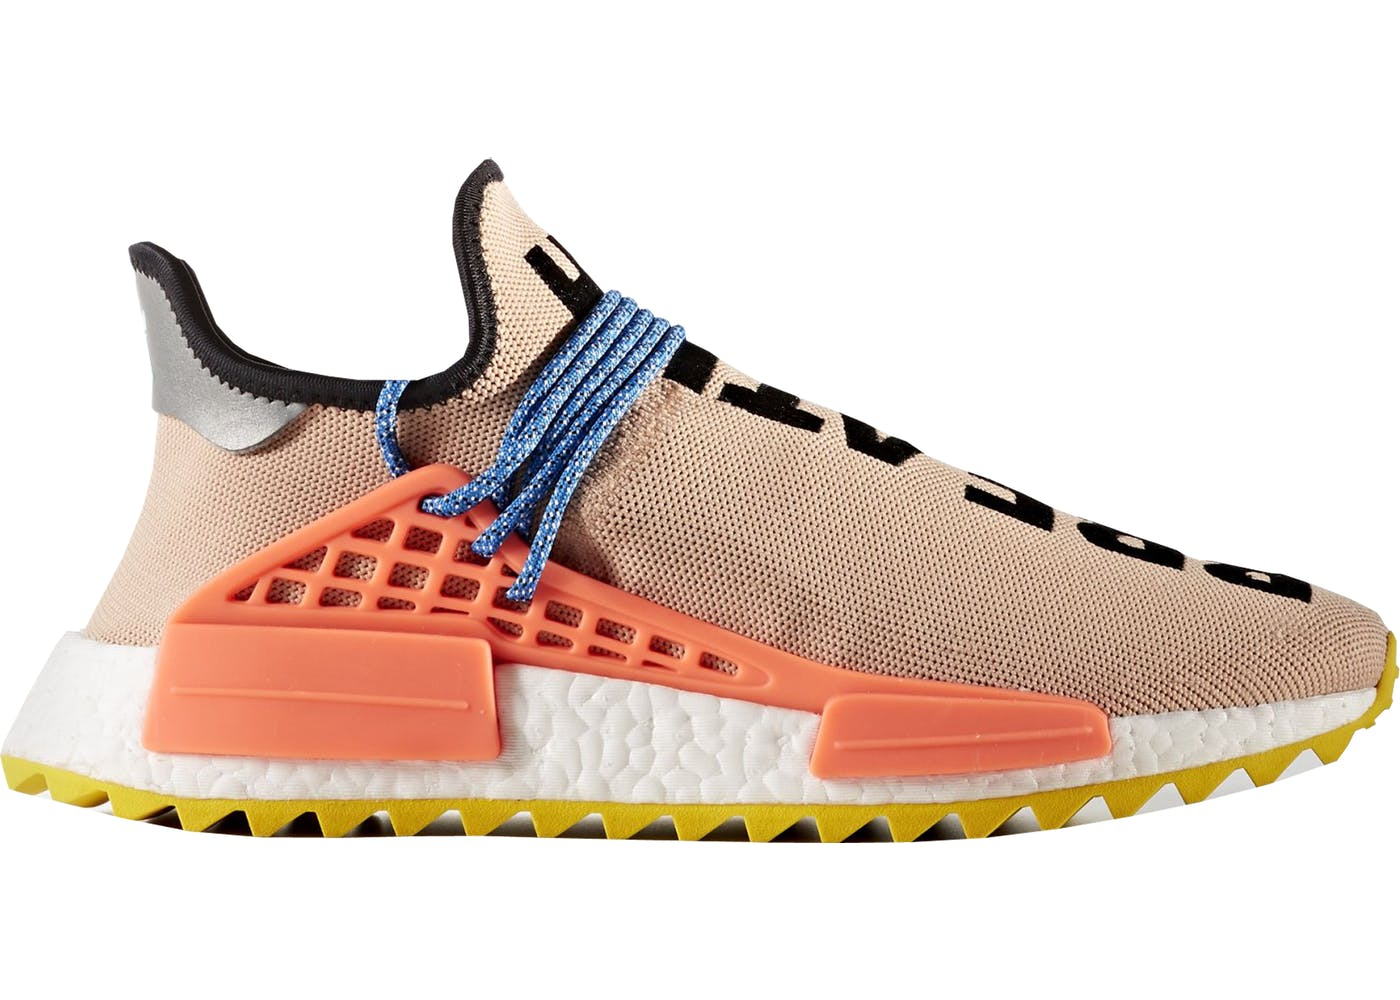 Search results for: 'Nmd human race' artemisoutlet